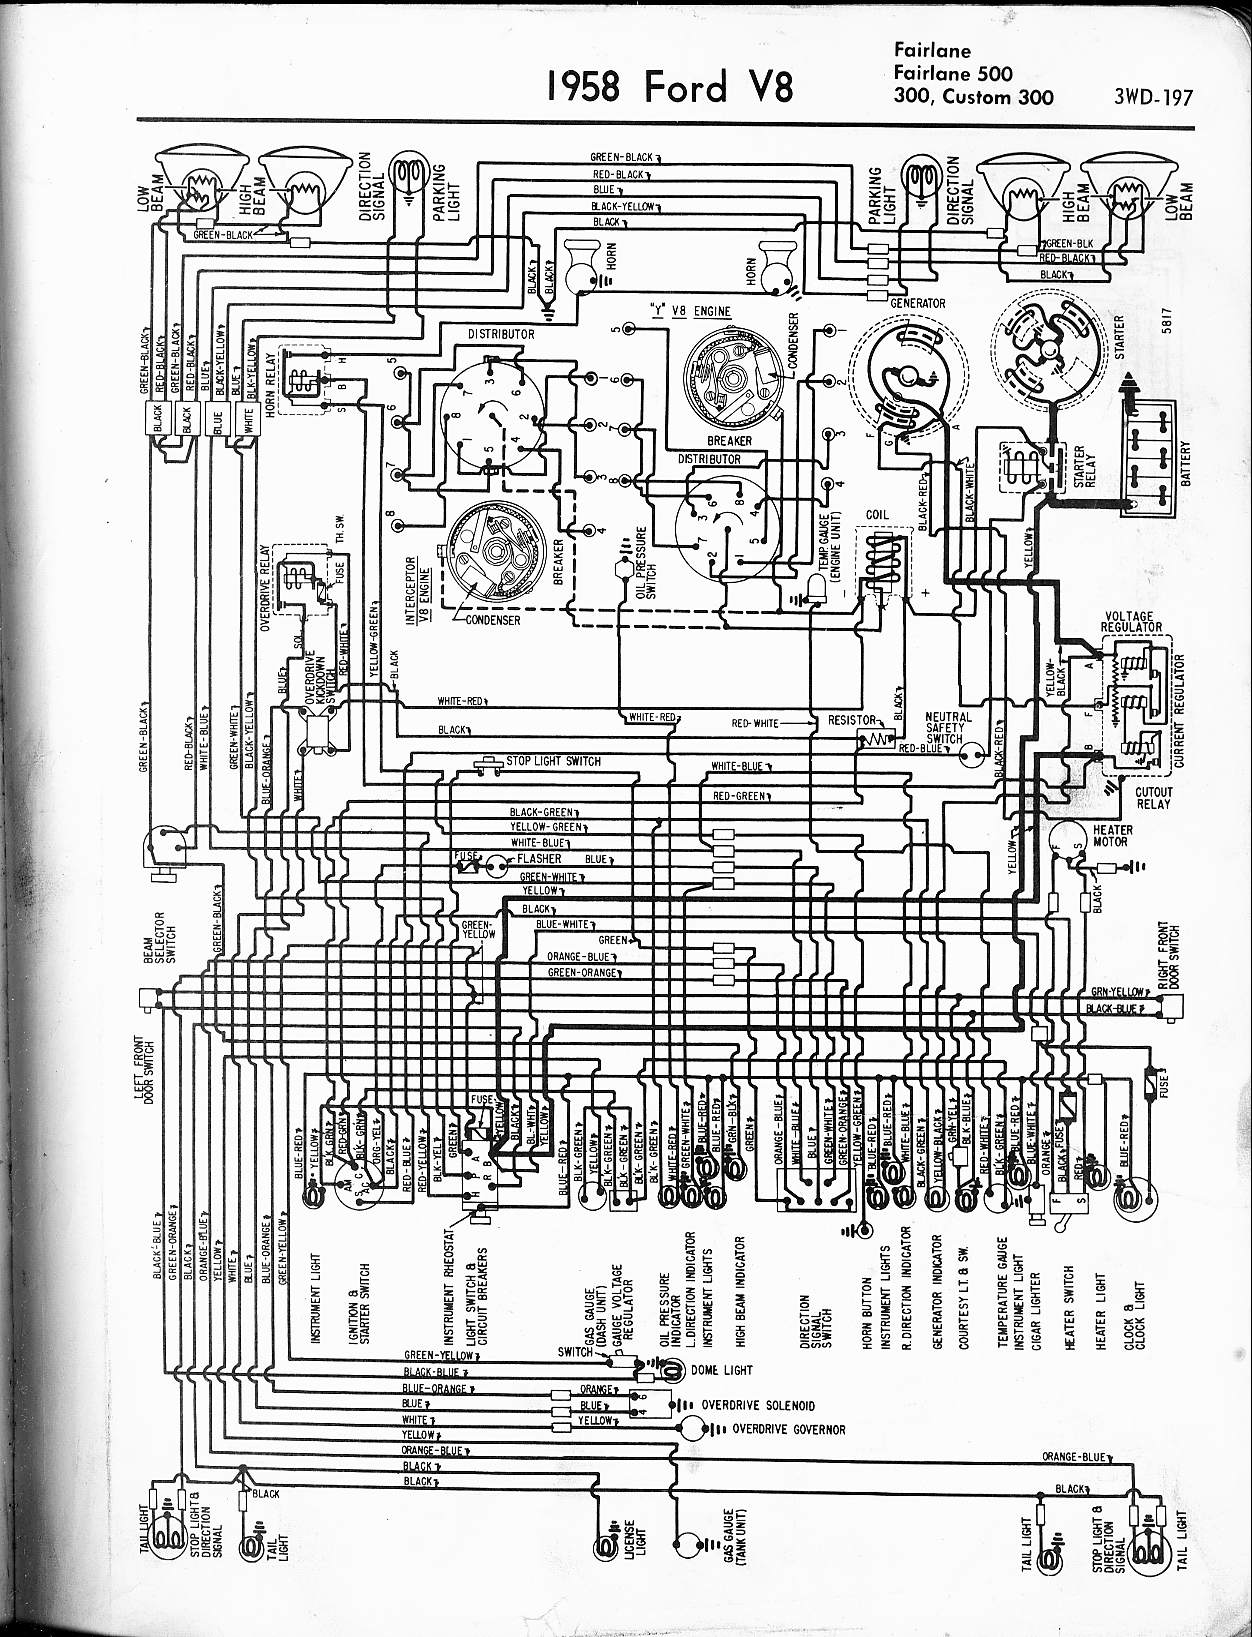 MWire5765 197 57 65 ford wiring diagrams ford wiring schematics at honlapkeszites.co